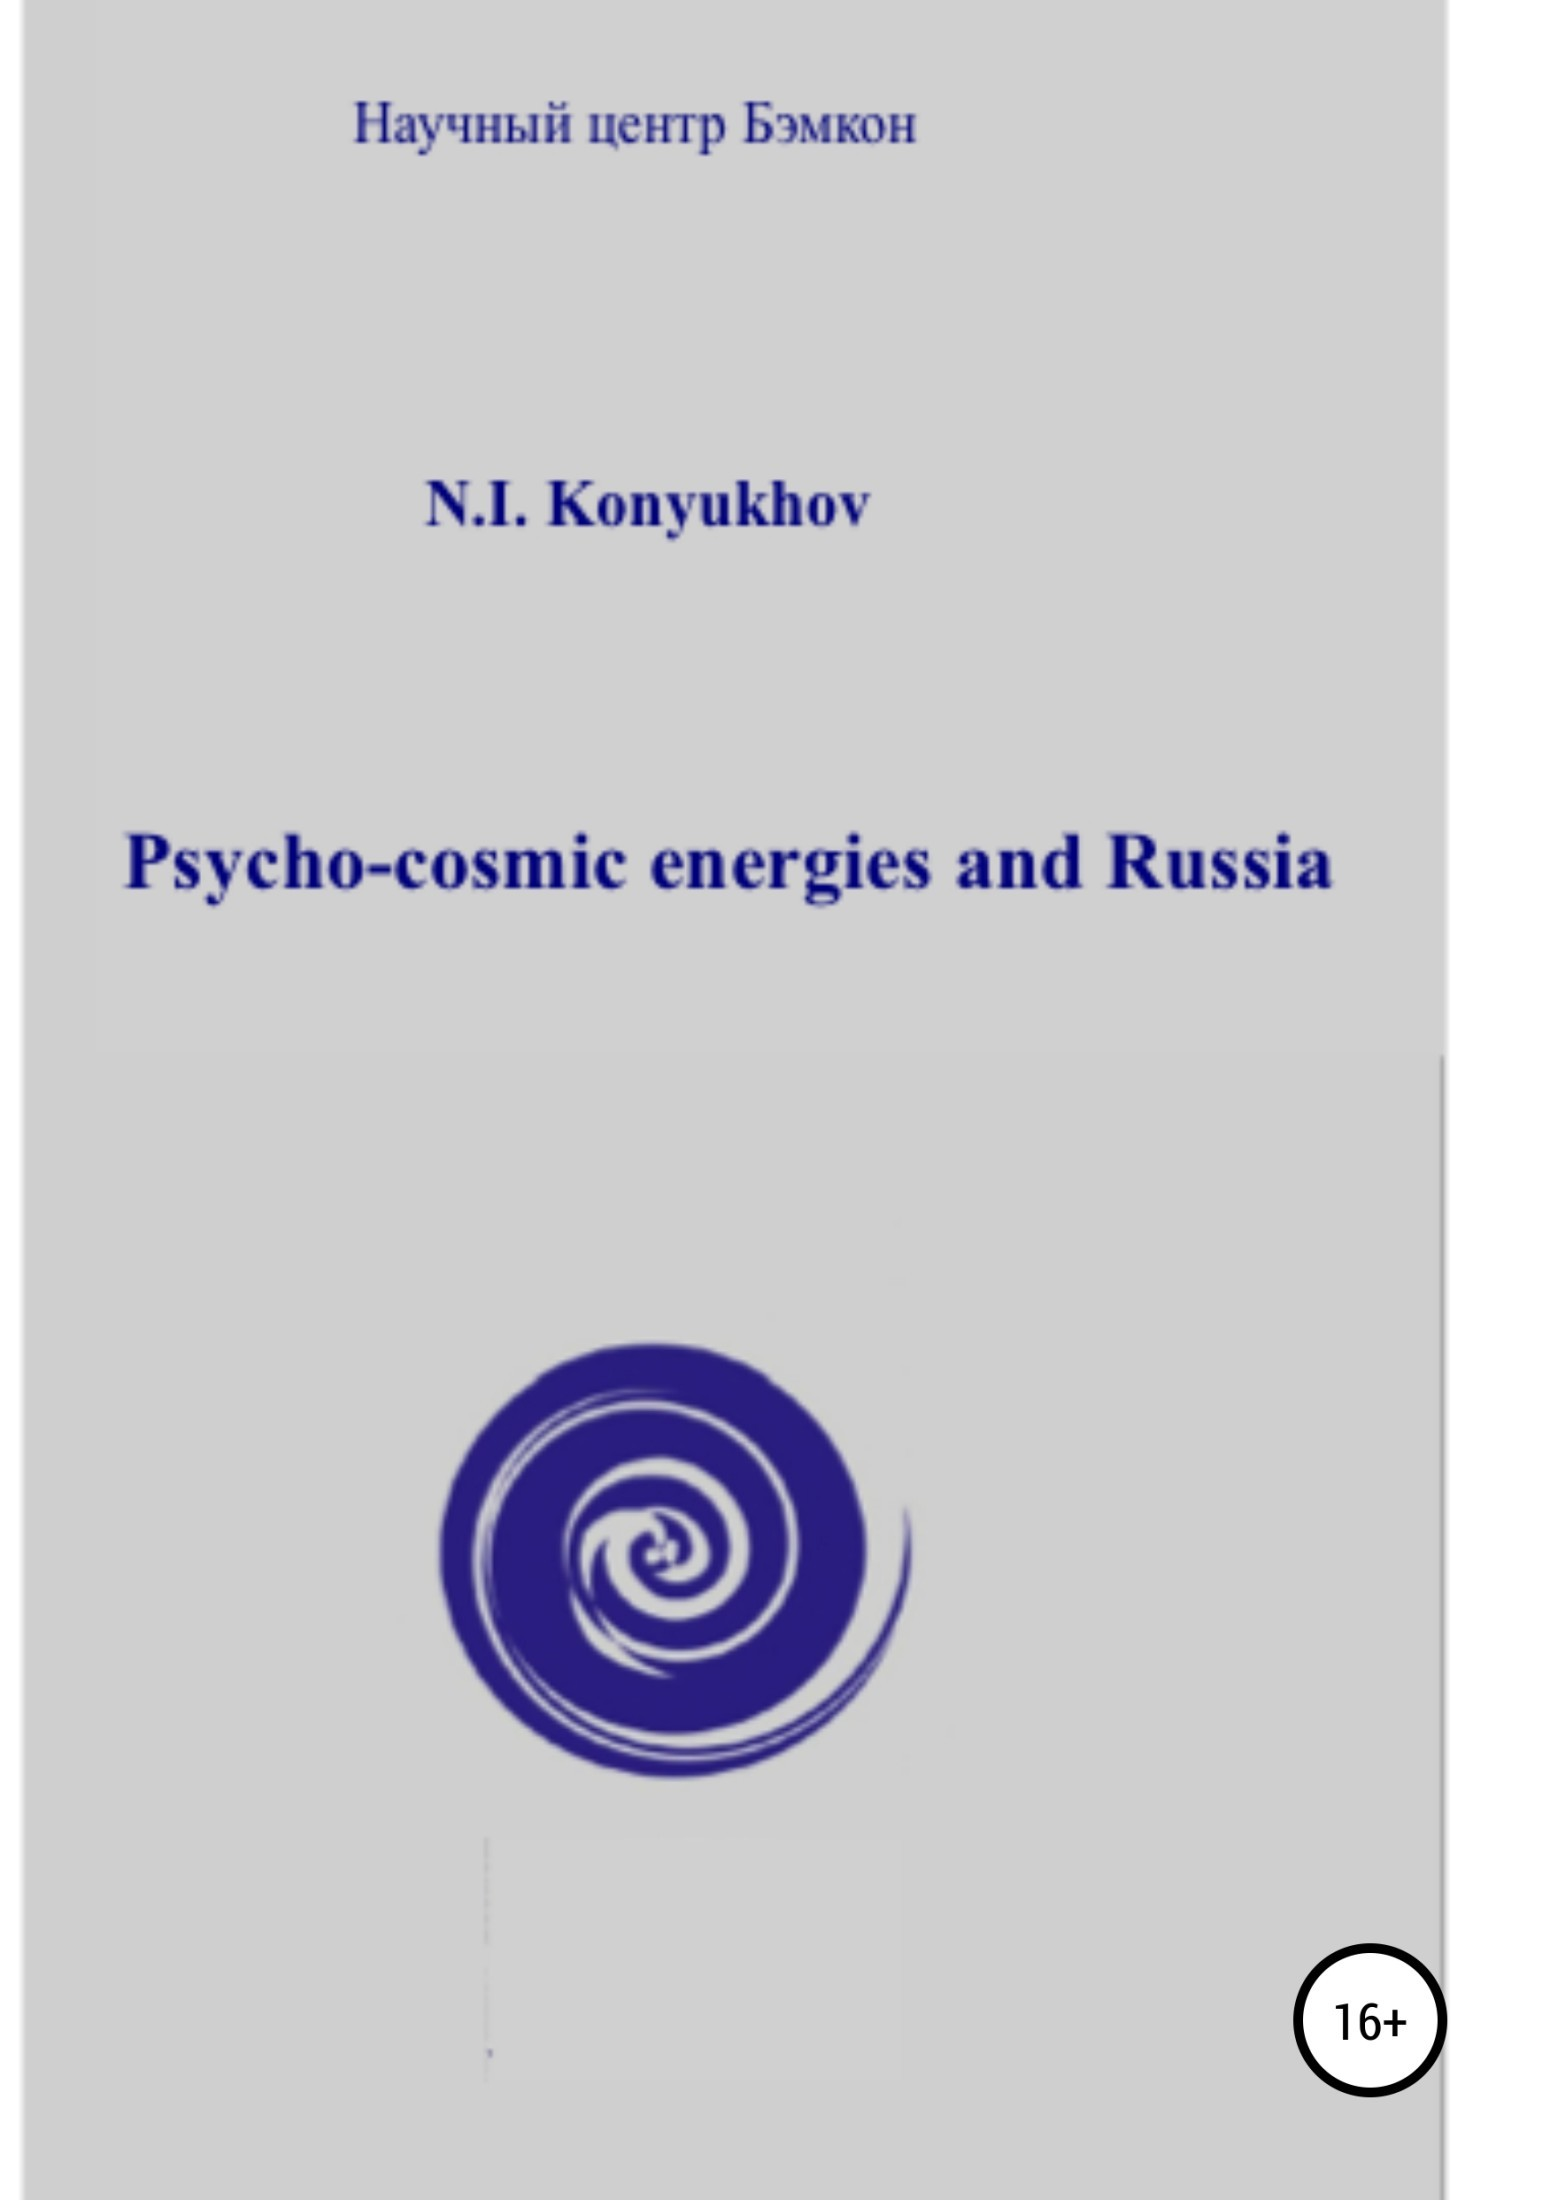 Николай Игнатьевич Конюхов Psycho-cosmic energies and Russia benoit robyns electricity production from renewables energies